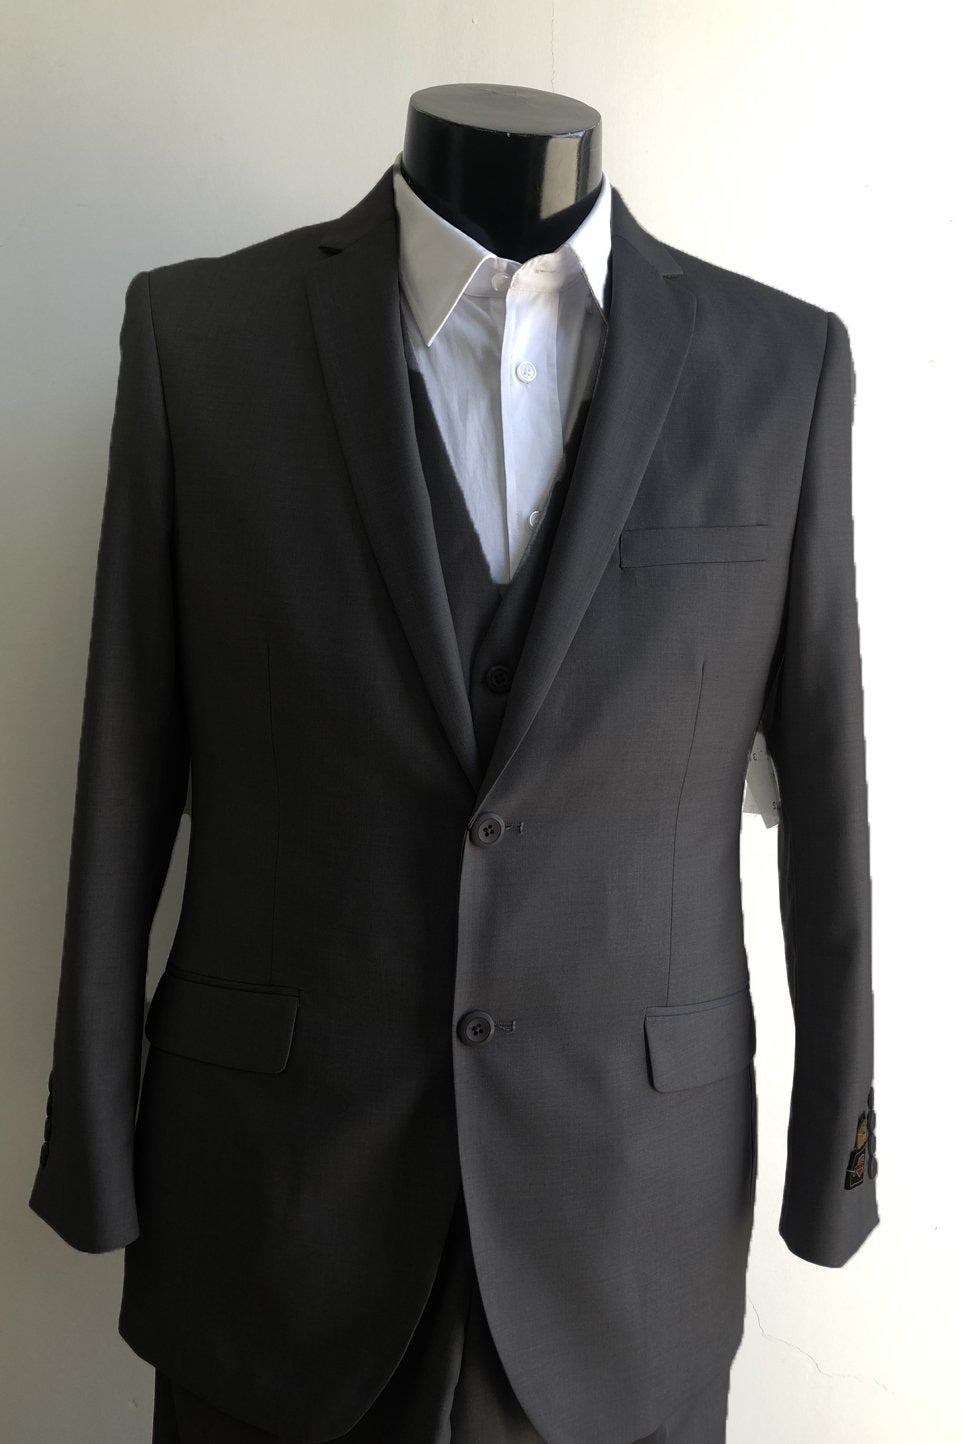 Wedding Guest Suit - Black